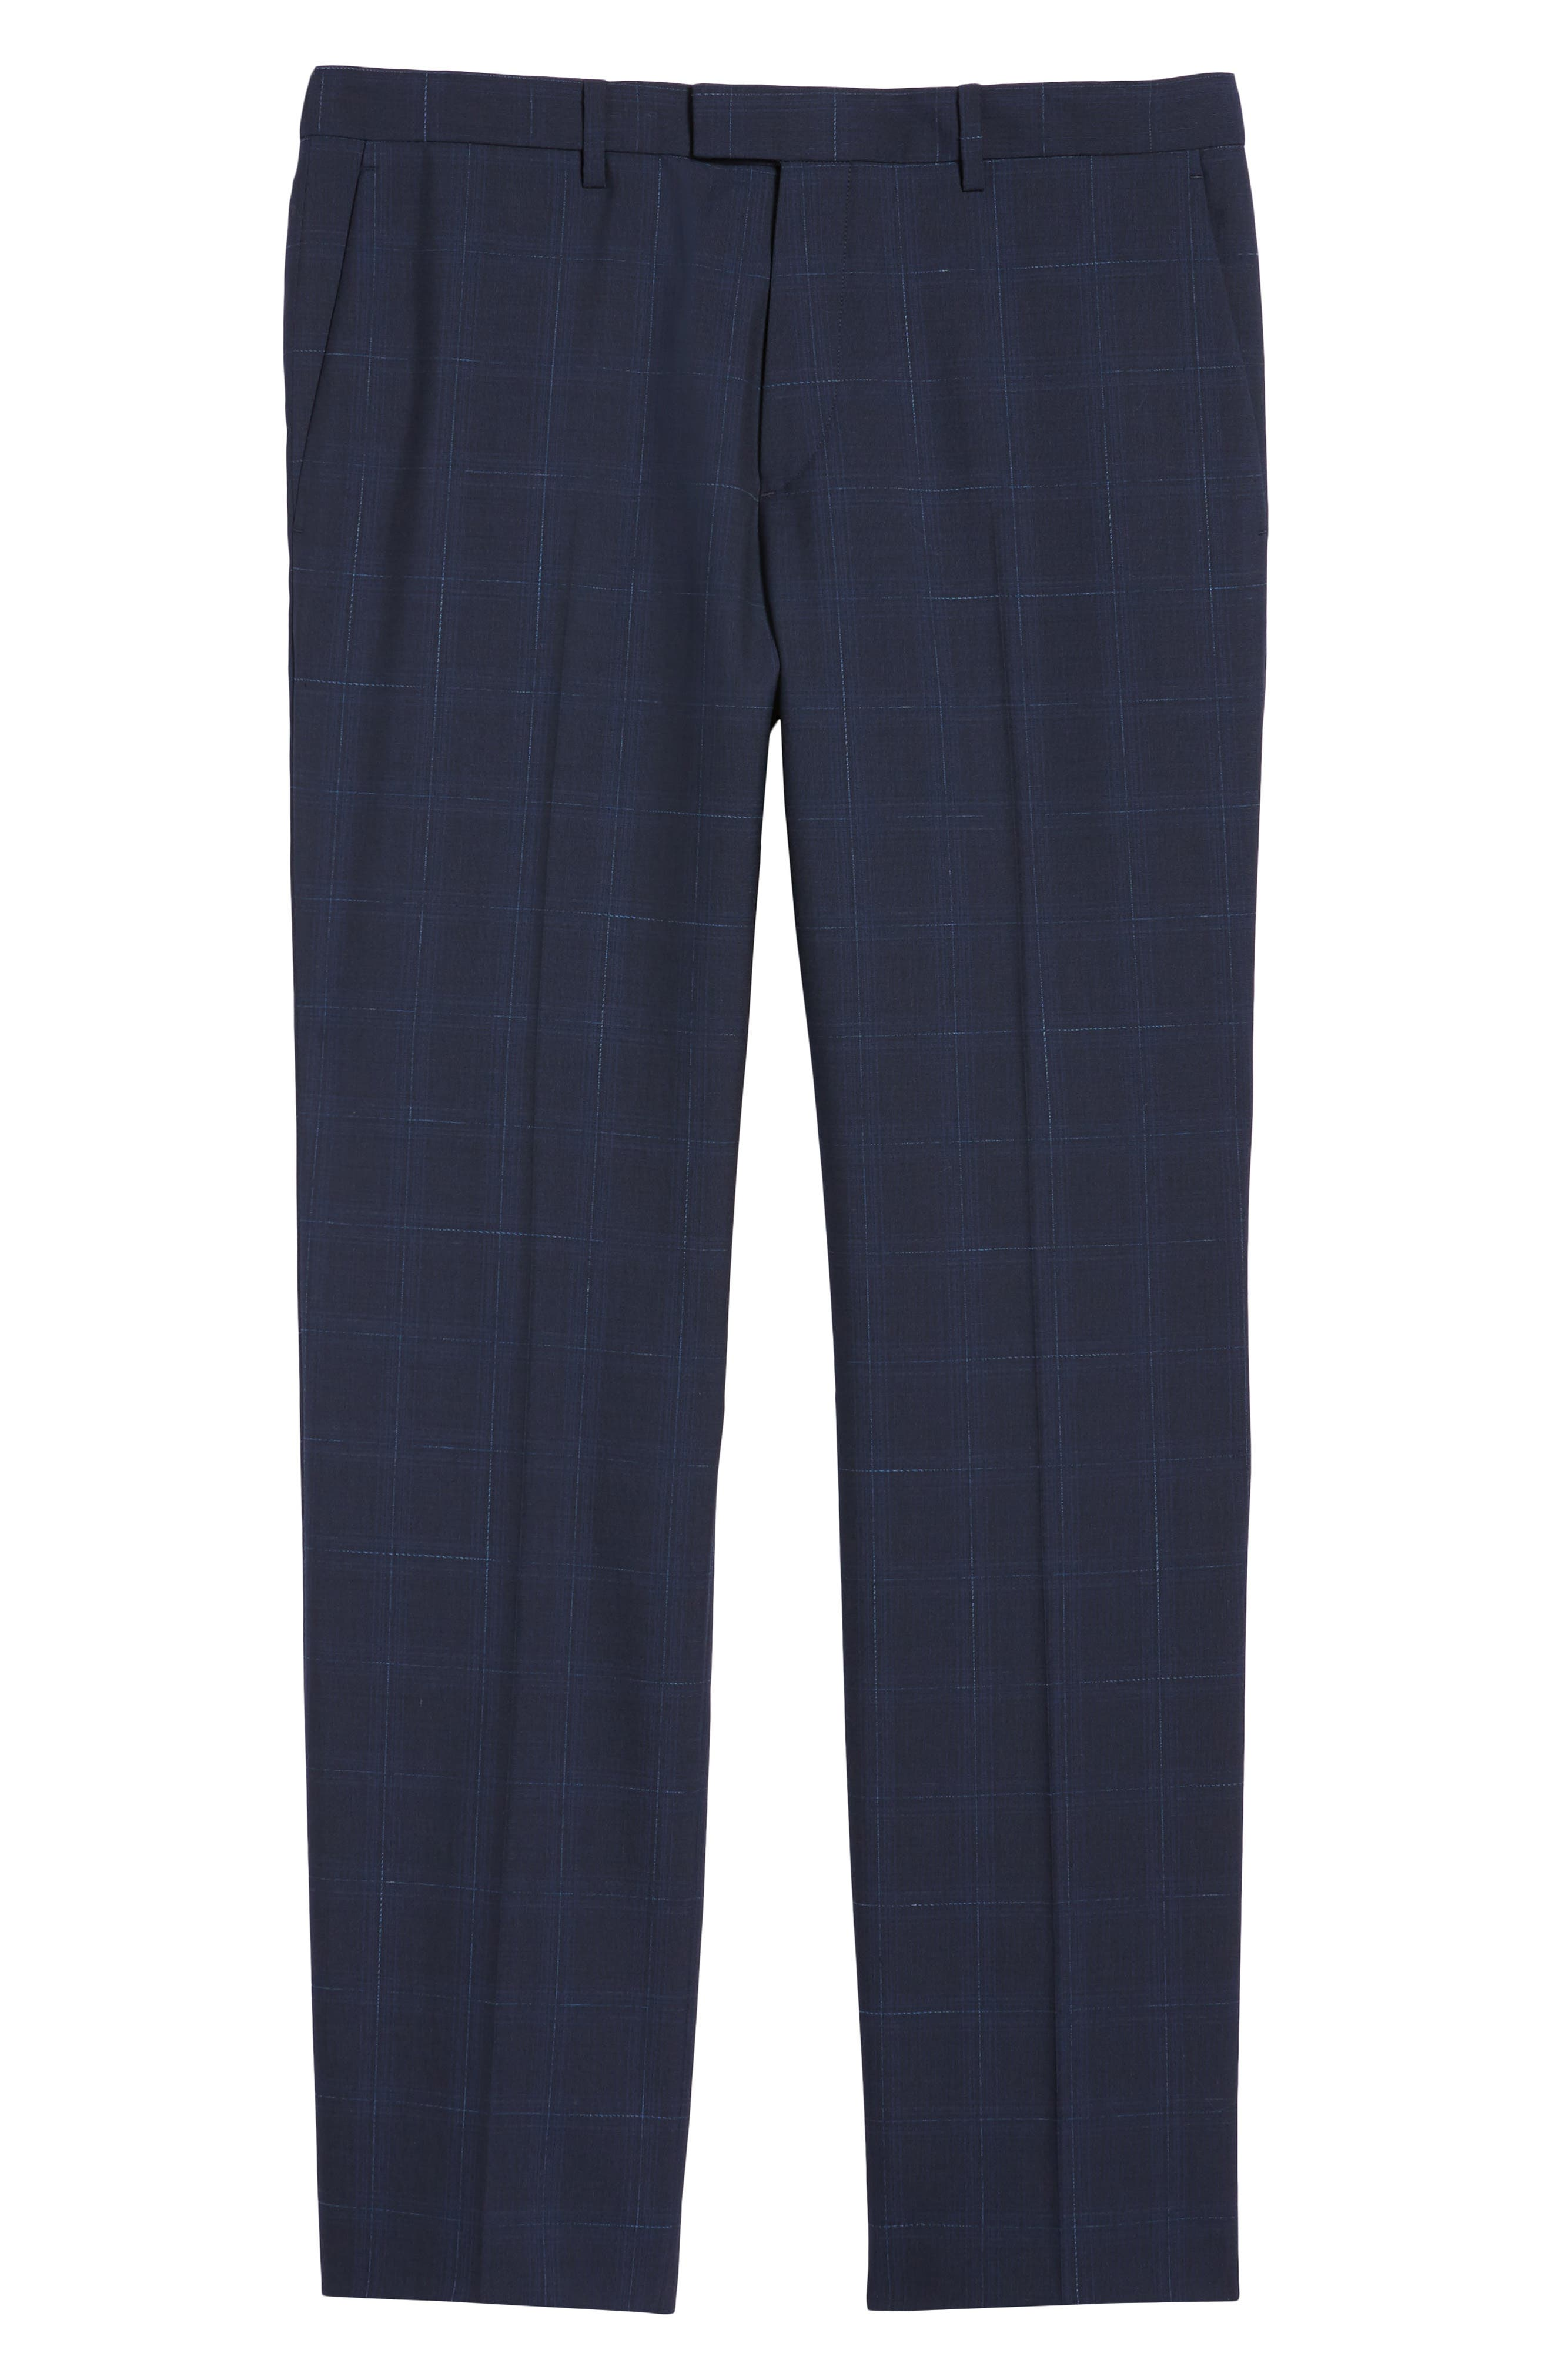 Marlo Flat Front Plaid Wool Trousers,                             Alternate thumbnail 6, color,                             497